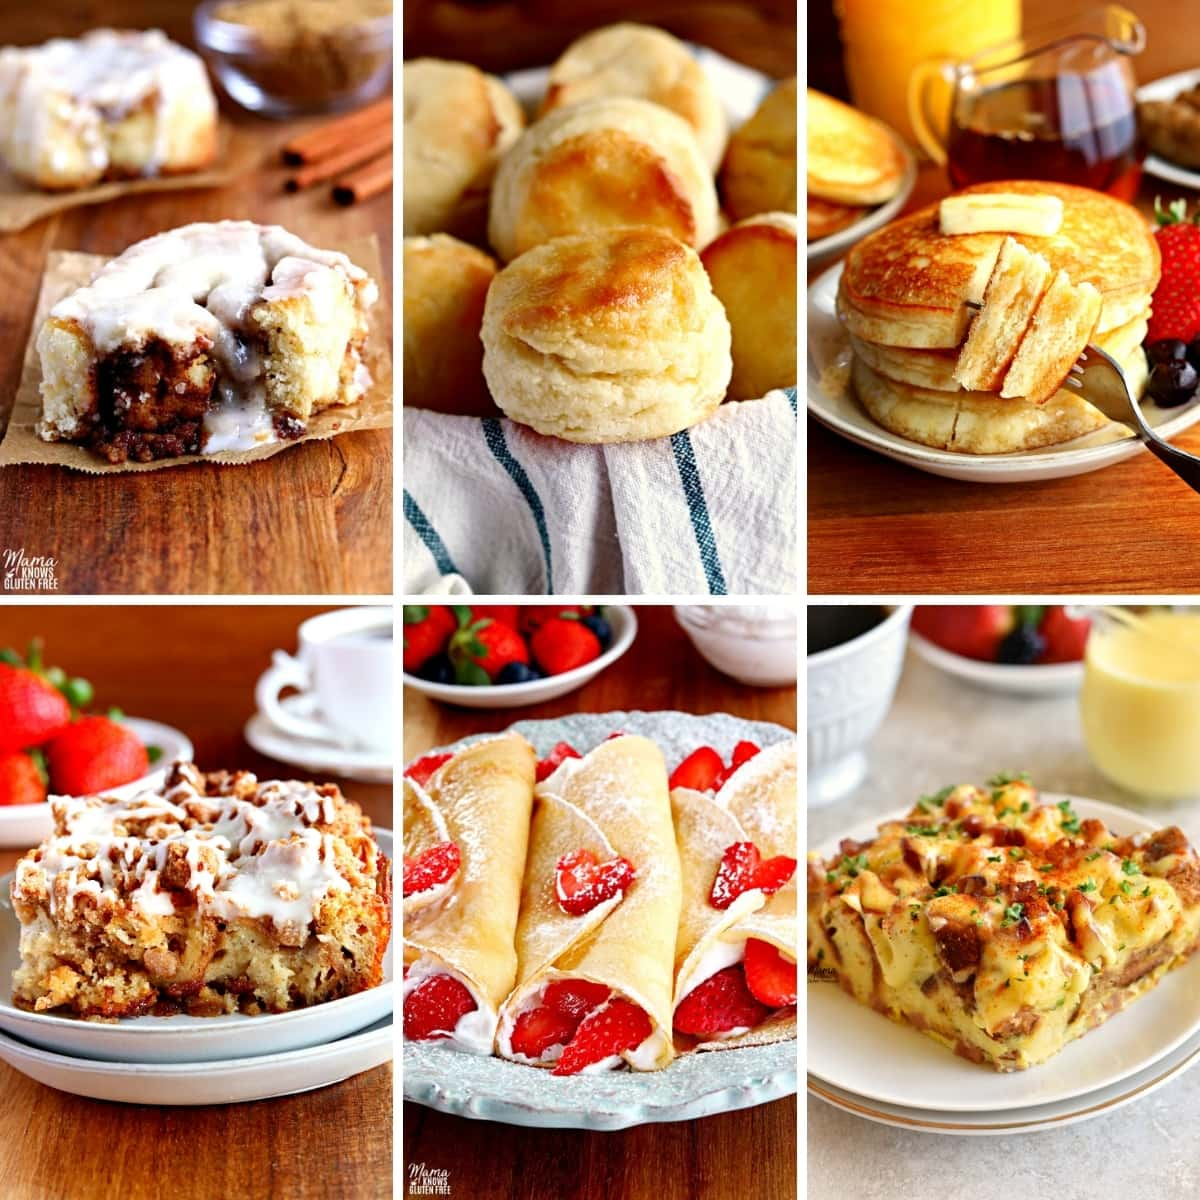 gluten-free Easter breakfast recipes photo collage